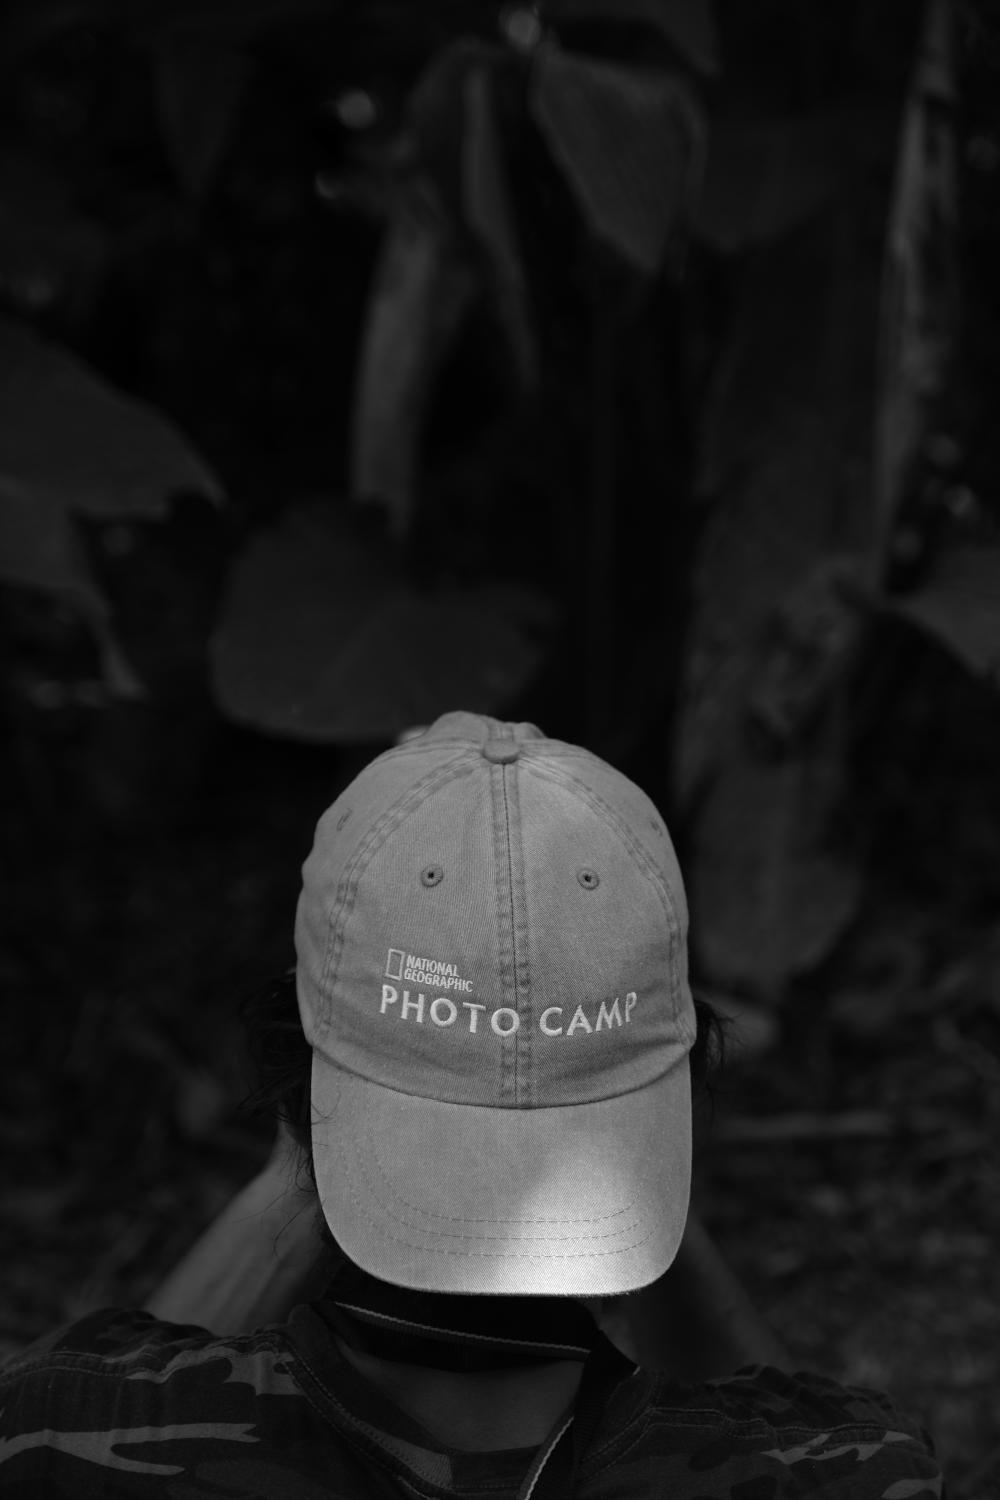 Feb. 19-23, 2020 National Geographic Photo Camp with tutors Ronan Donovan, Federico Pardo, and Kirsten Elsener in Osa Conservation, Costa Rica.